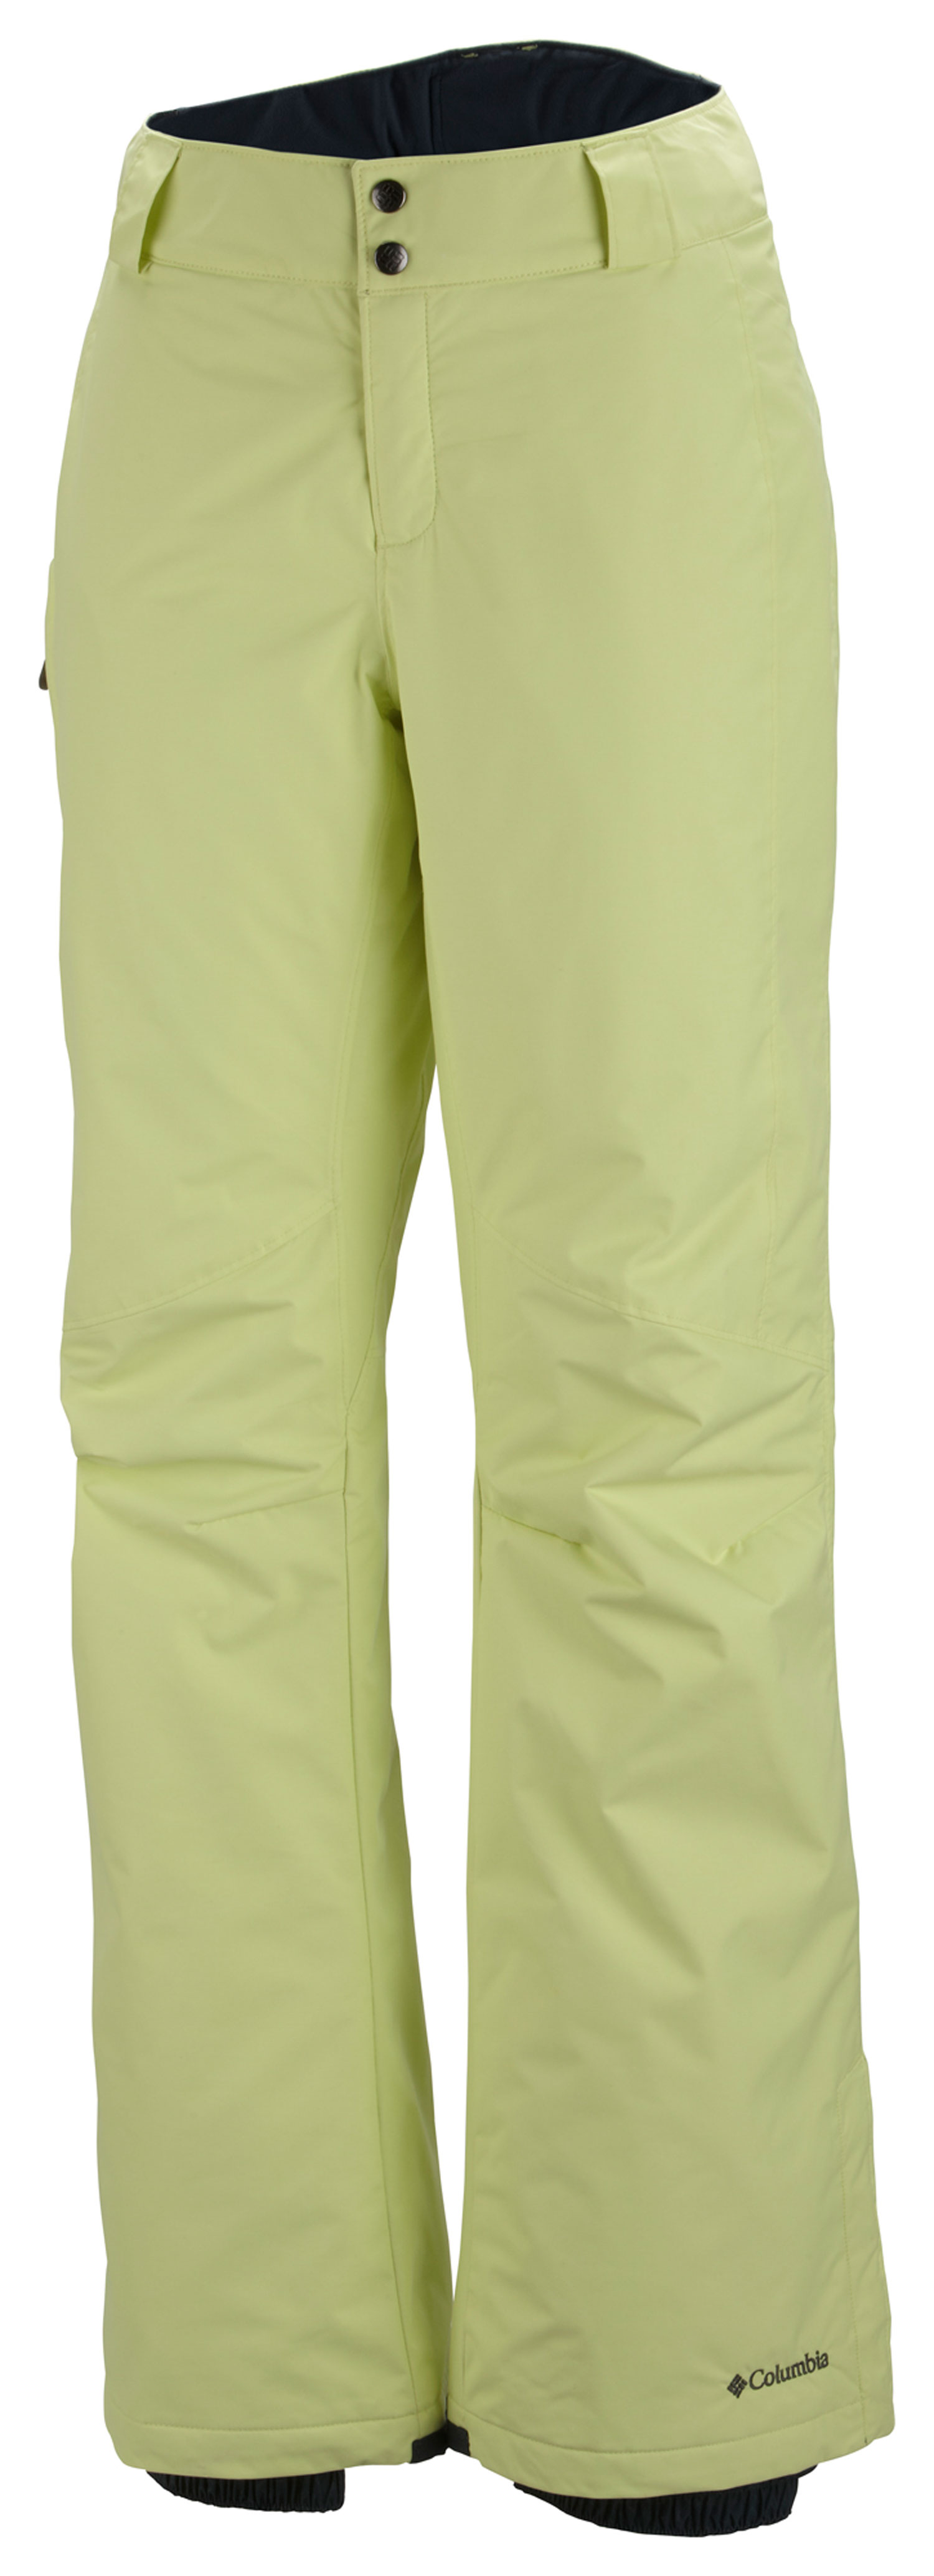 Ski Key Features of the Columbia Bugaboo Ski Pants: FABRIC Shell: 100% nylon Legacy twill. Lining: 100% nylon embossed taffeta. Insulation: 100% polyester Microtemp XF II 60g. FIT Active Omni-Tech™ waterproof/breathable critically seam sealed Adjustable waist Internal, adjustable leg gaiter Reinforced leg hem Lower leg snap gusset Zip-closed pockets - $95.00